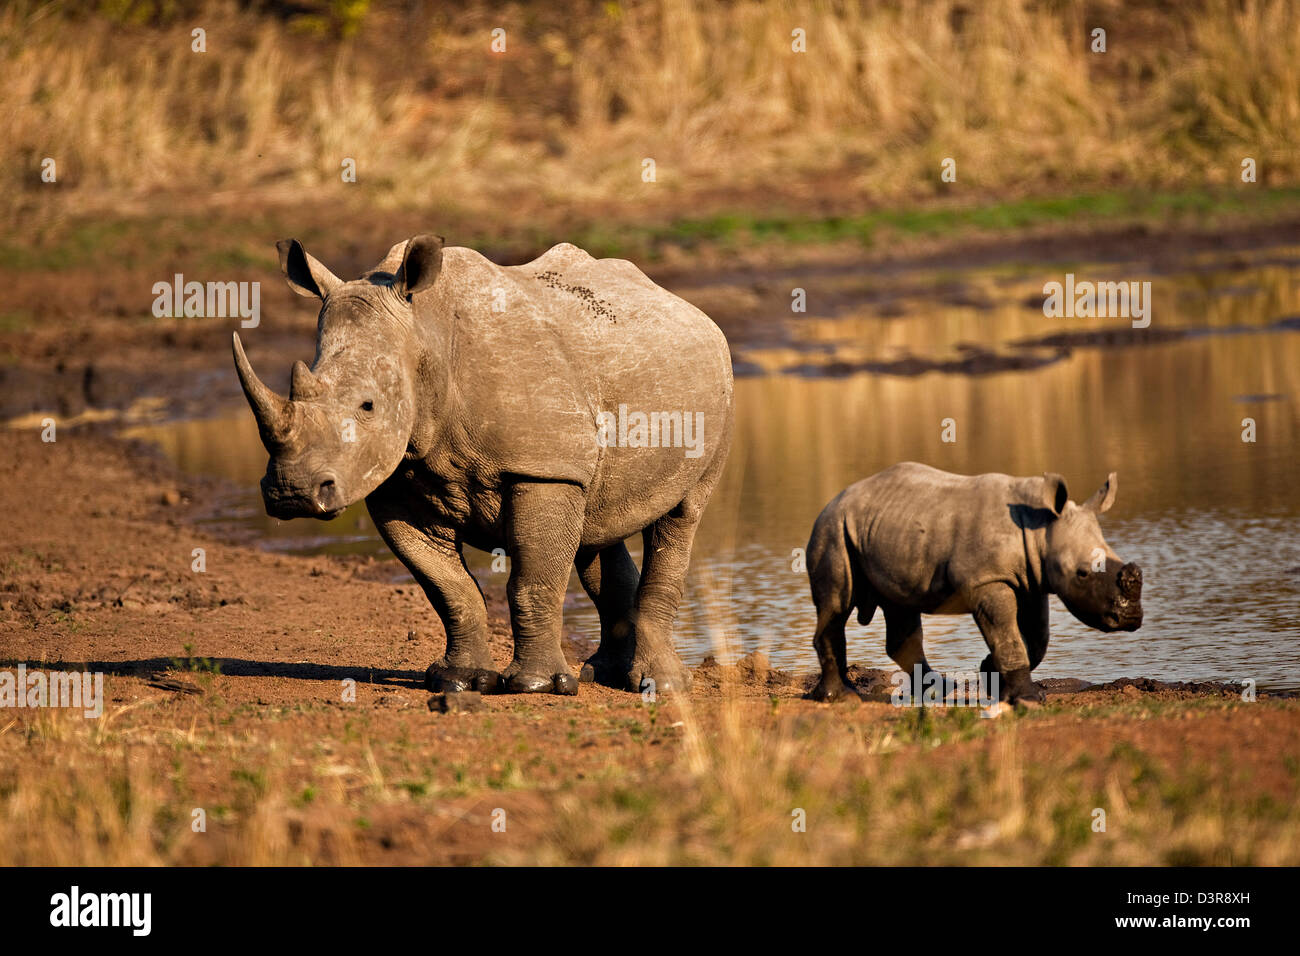 White Rhino with young at watering hole in the Phinda Game Reserve, South Africa - Stock Image